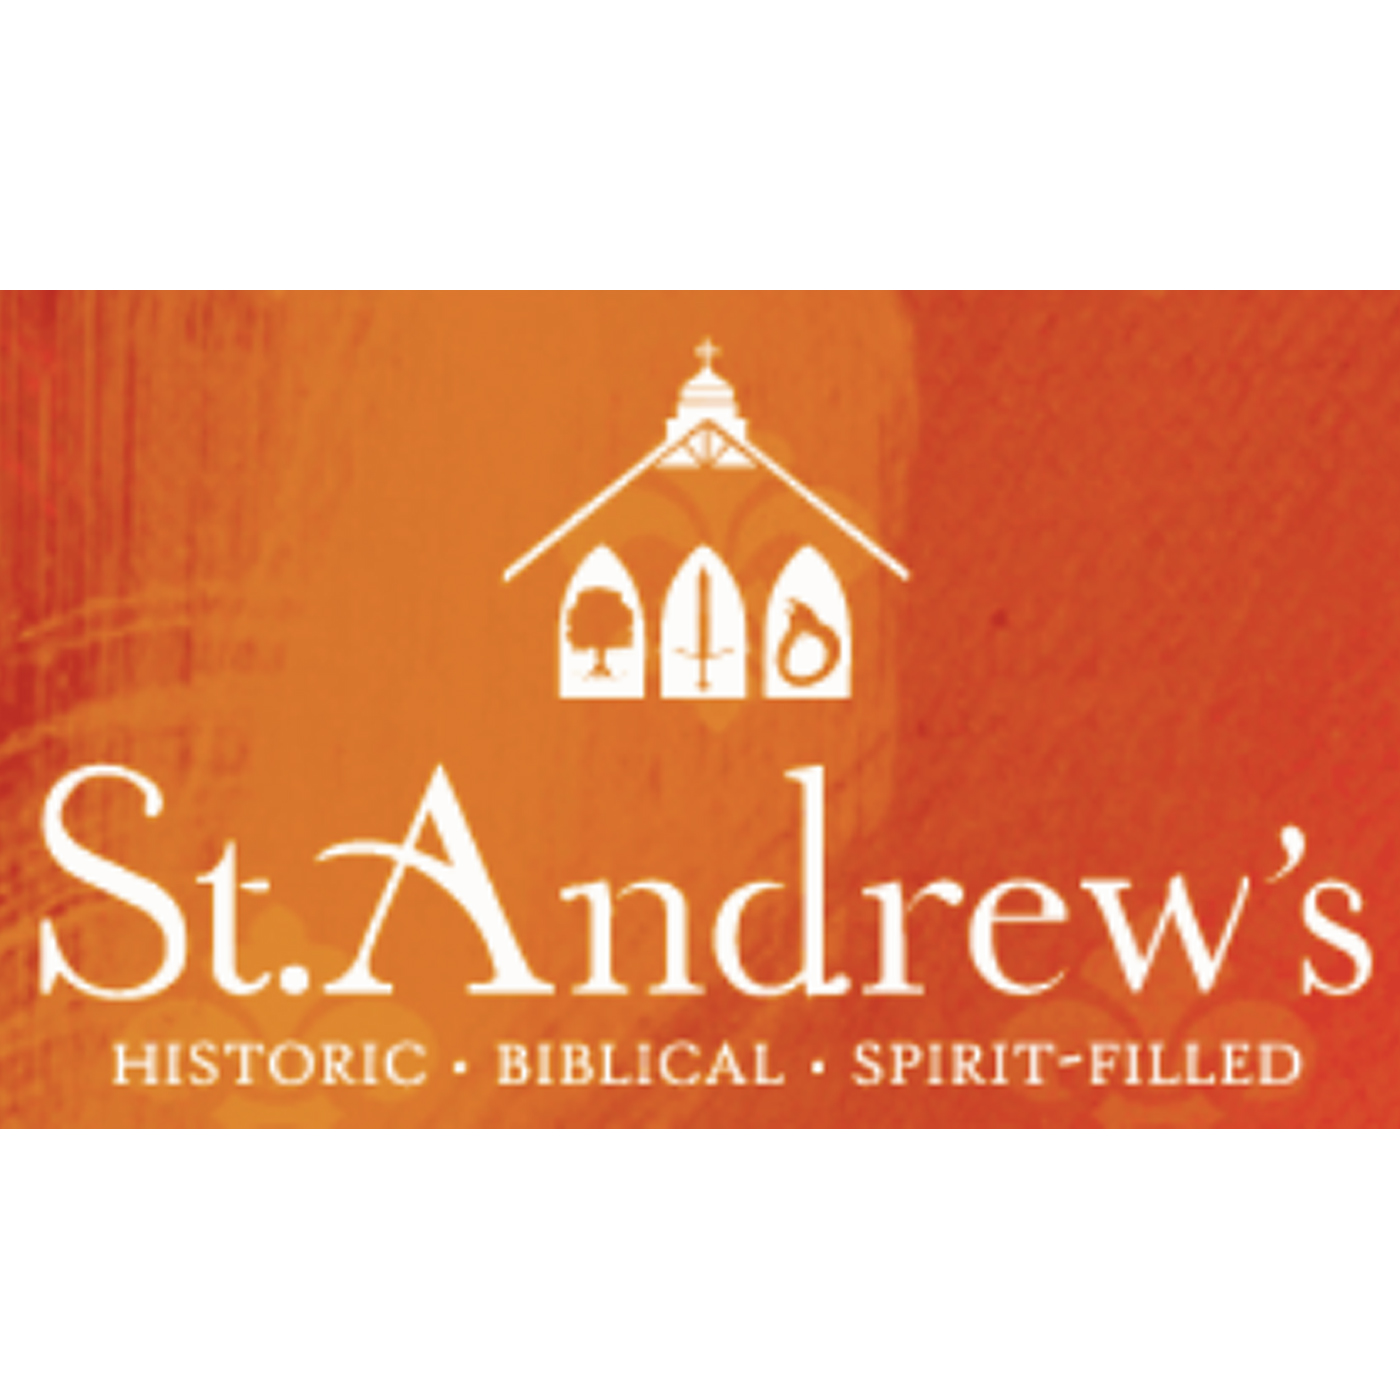 Sermons - St. Andrew's Church